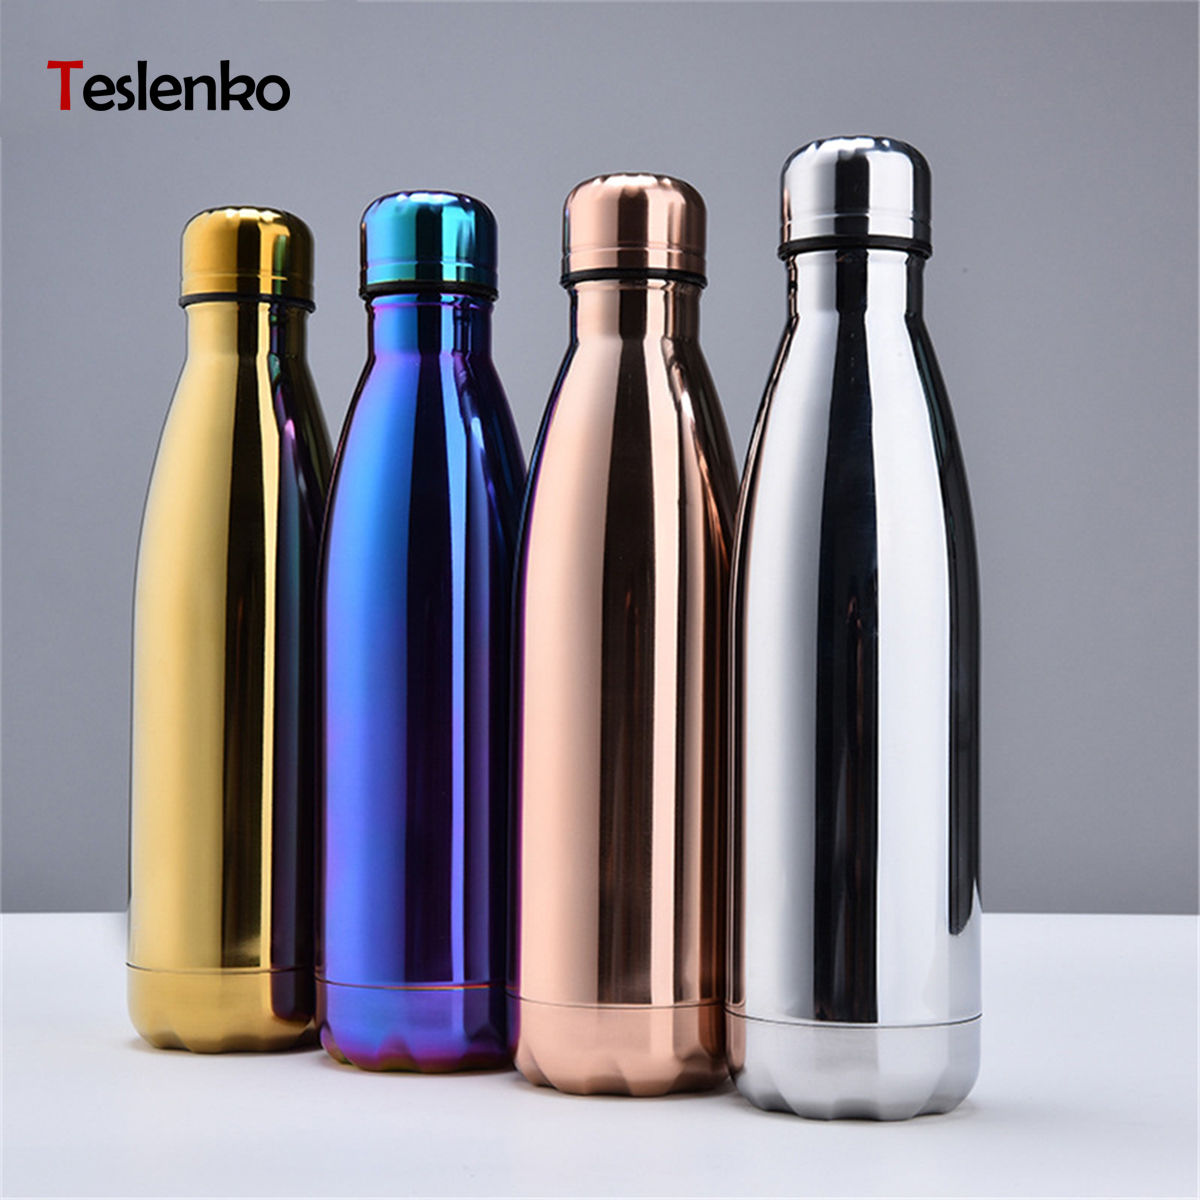 LOGO Customize Stainless Steel Thermos Vacuum Insulated Cup Bottle For Water Bottles Double Wall Travel Drinkware Sports Flask|Water Bottles|   - AliExpress